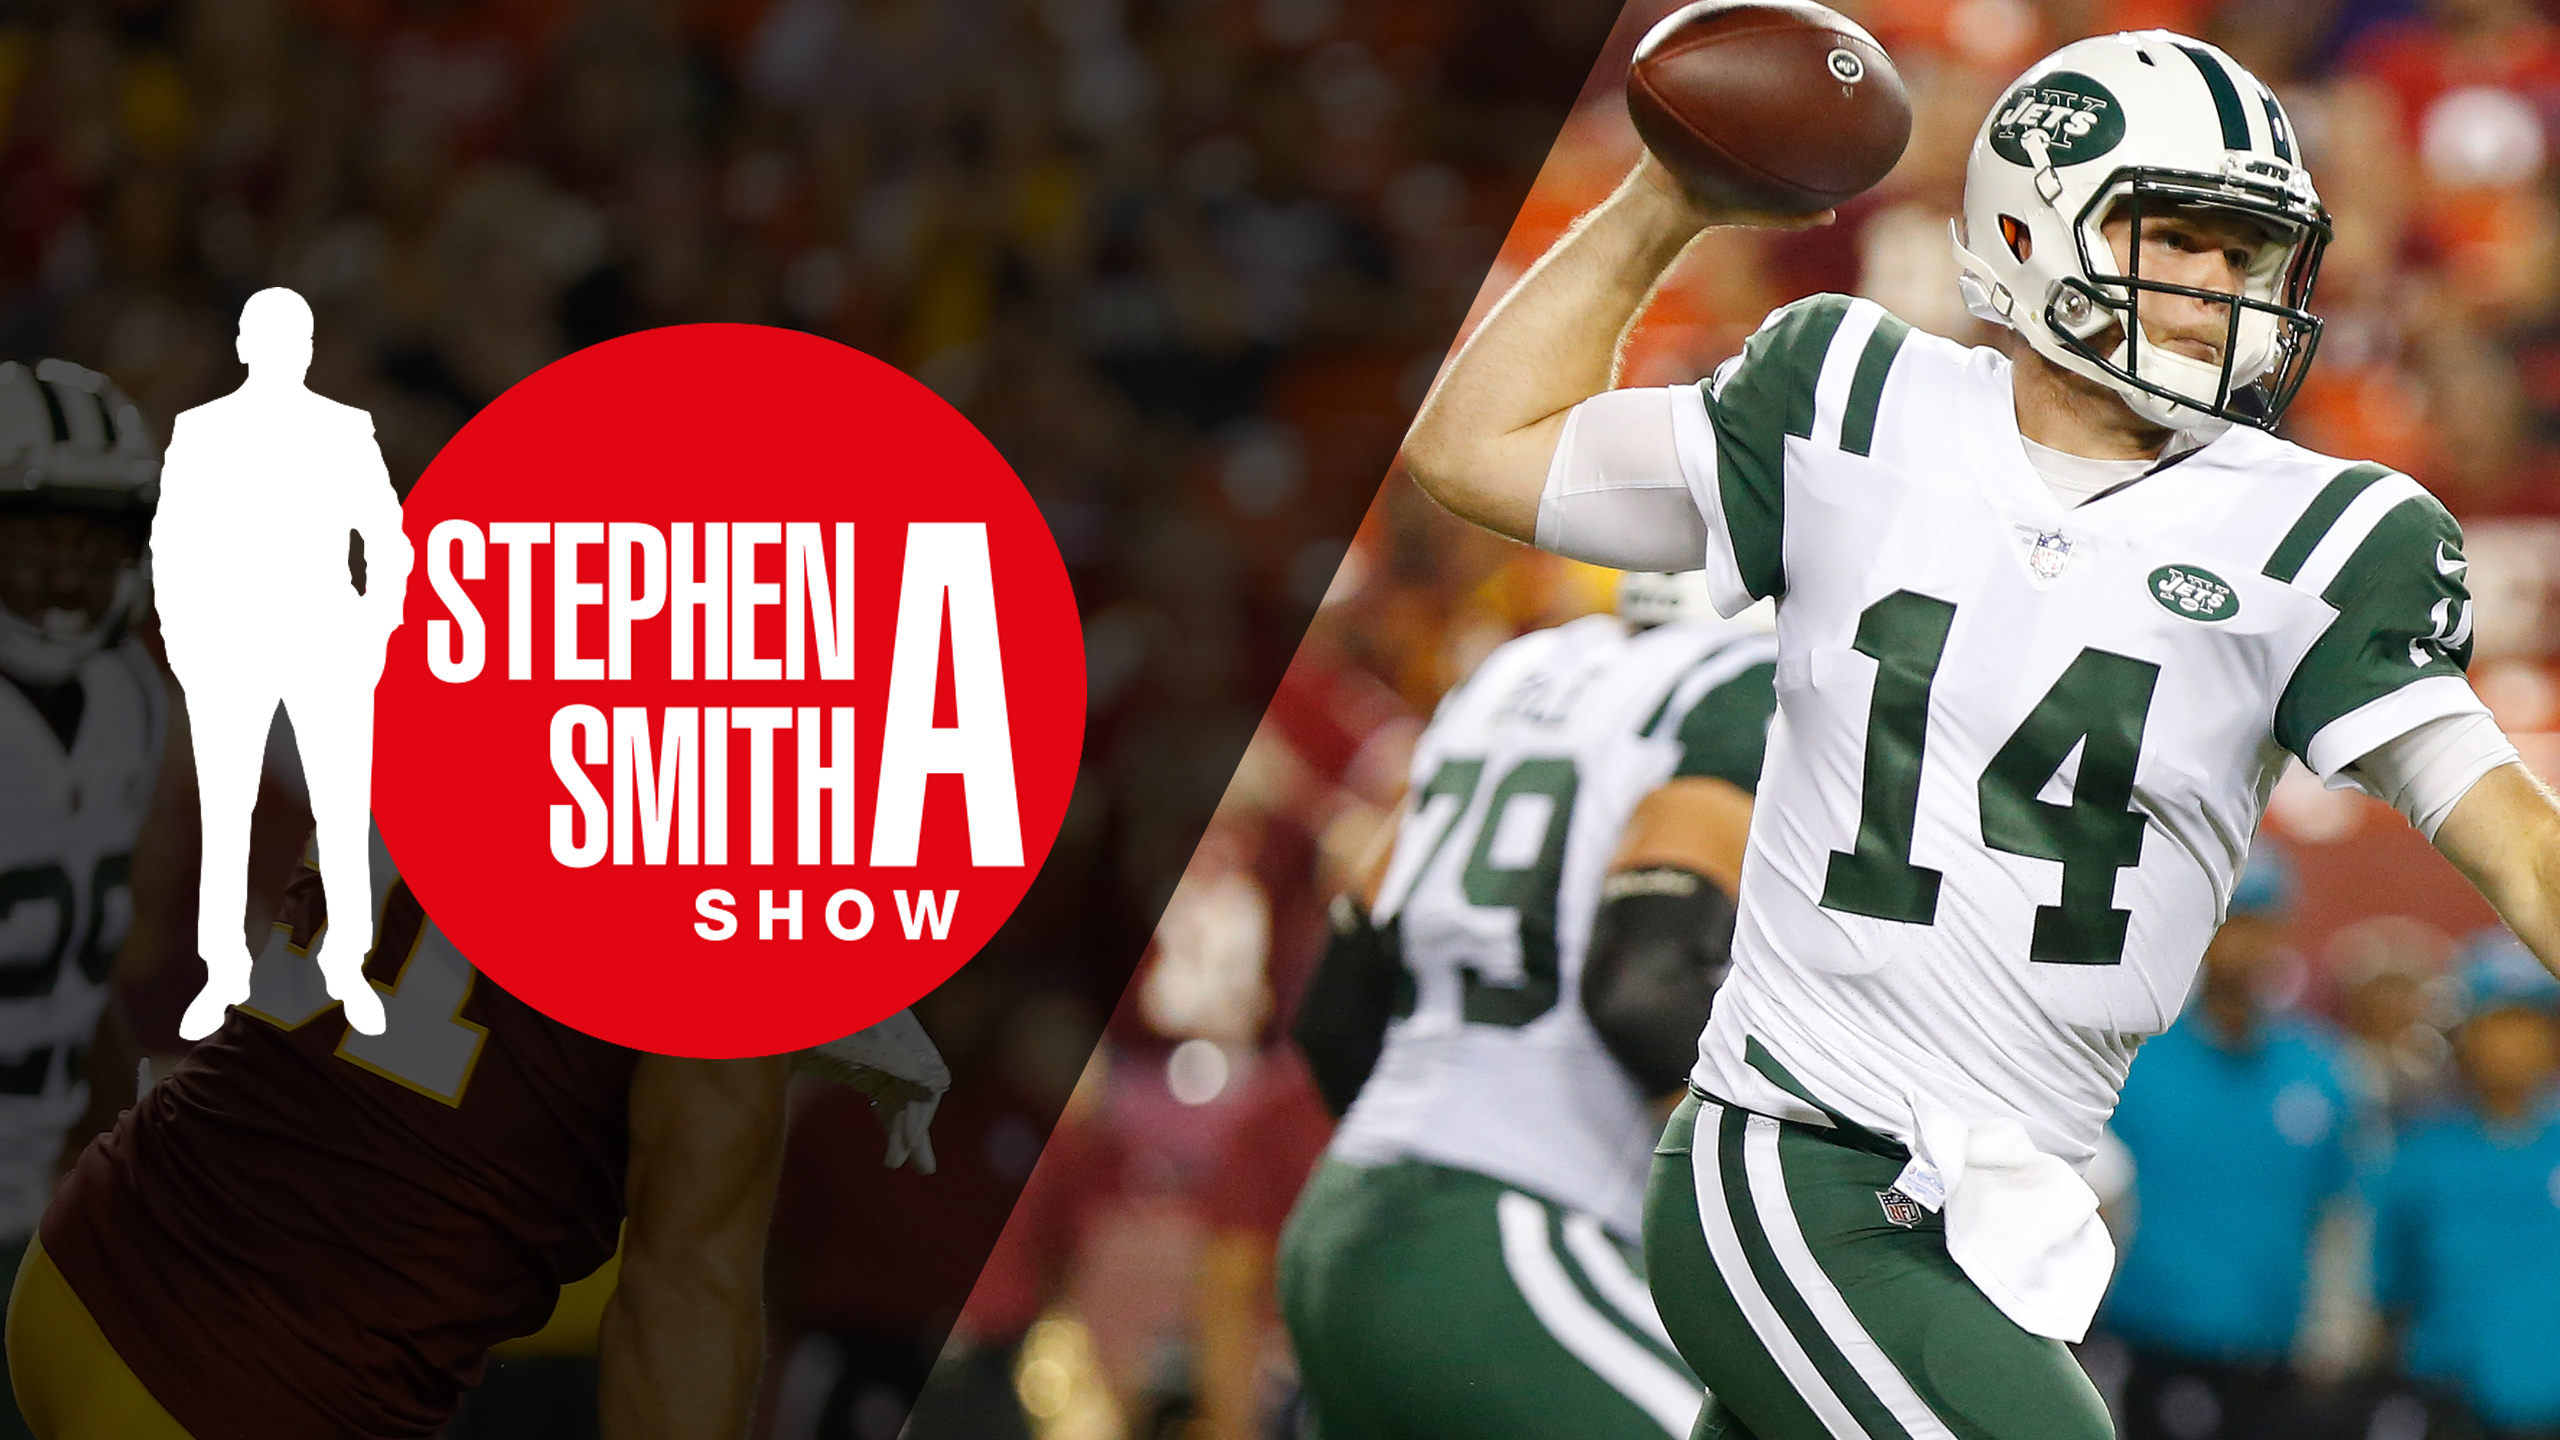 Fri, 8/17 - The Stephen A. Smith Show